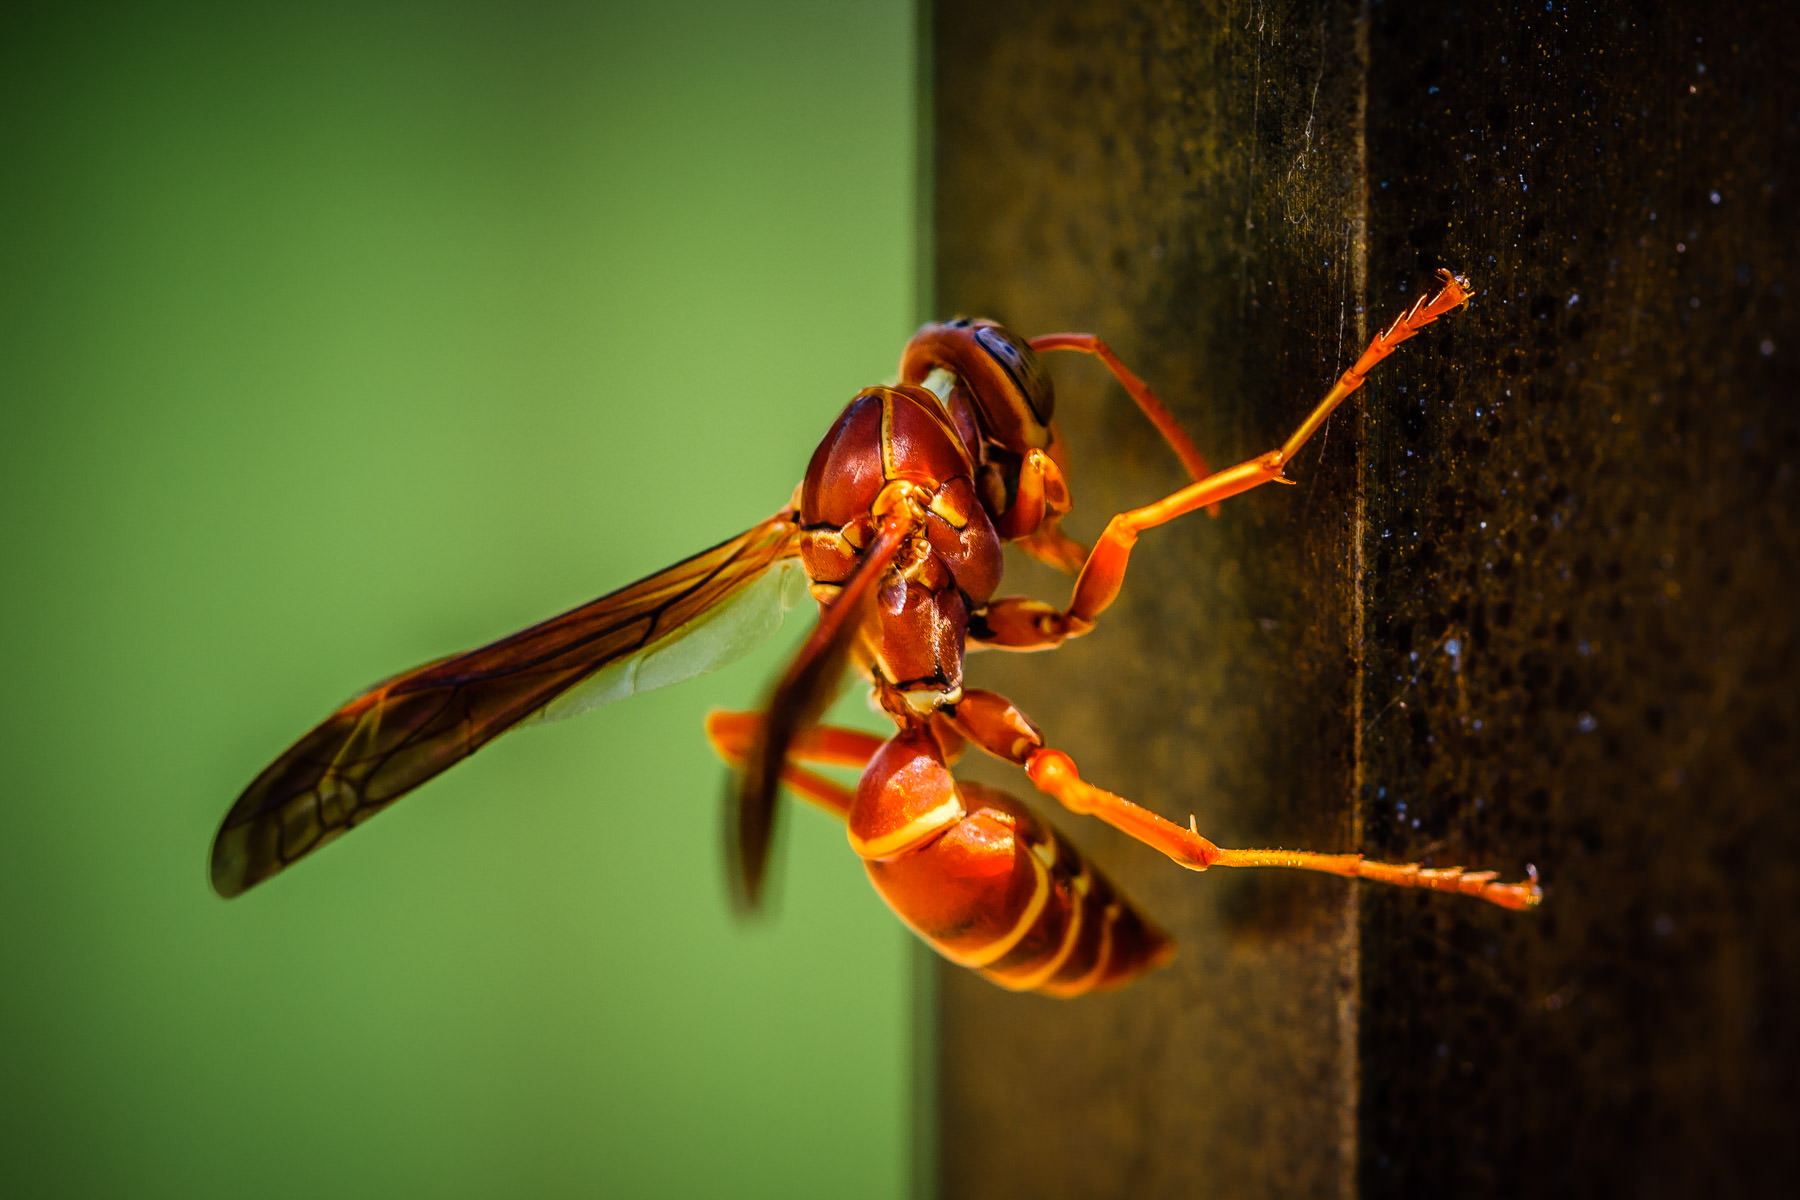 This rather scary-looking wasp was spotted in College Station, Texas.